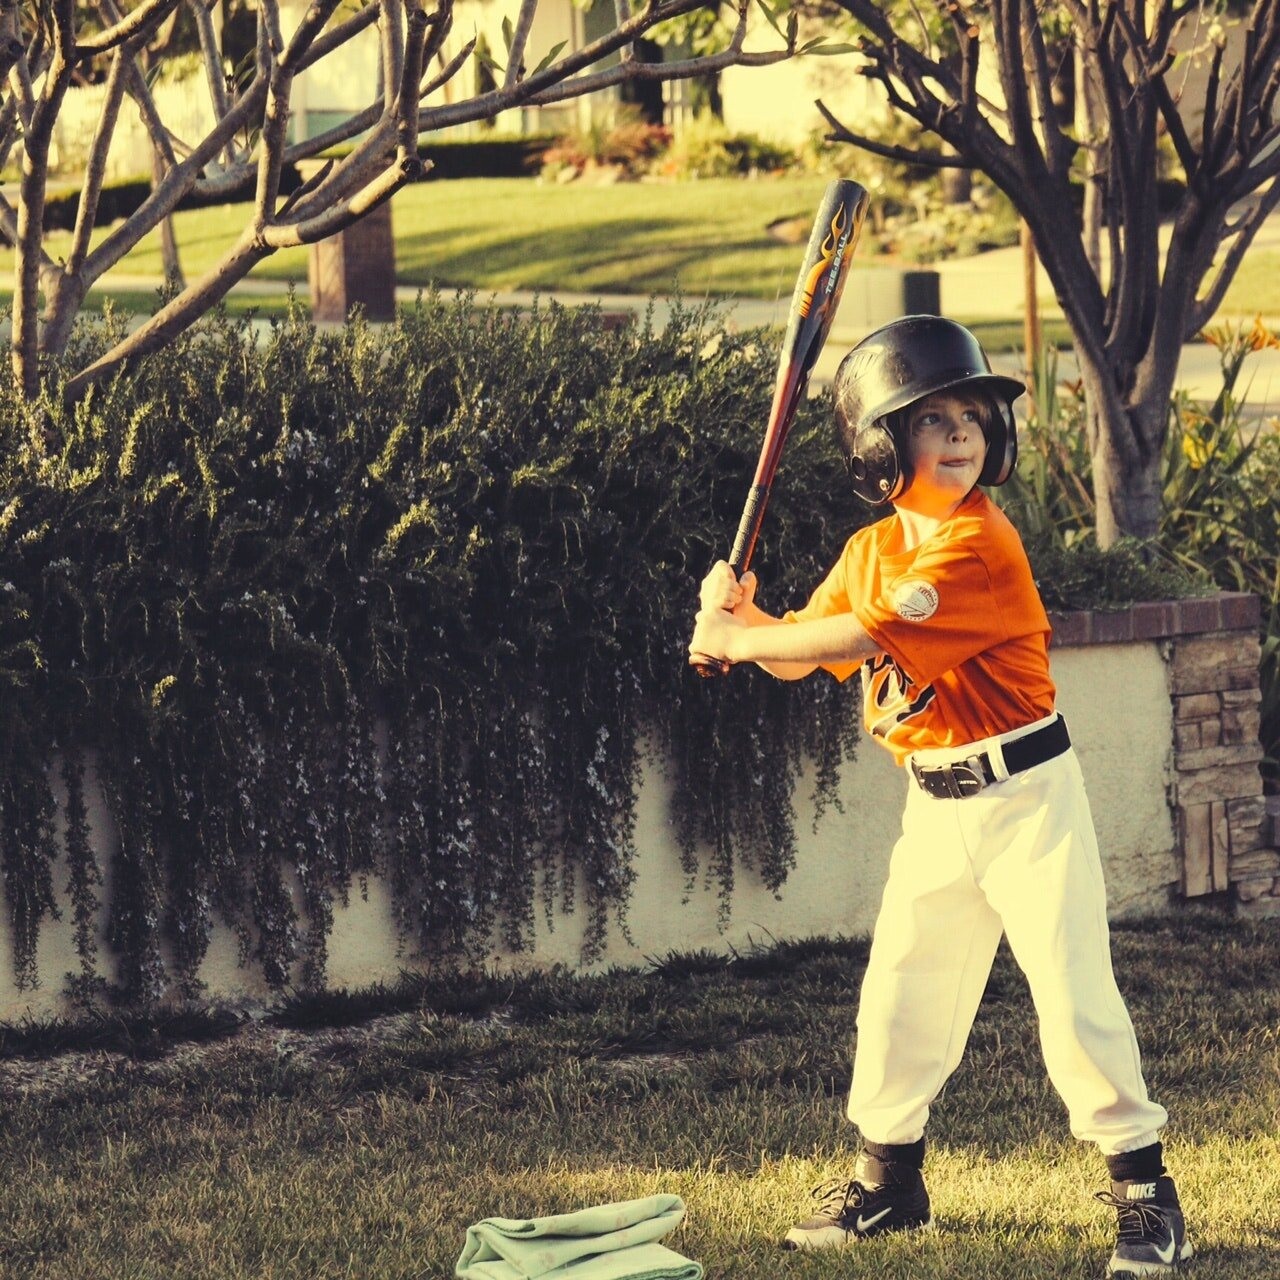 What is your favorite baseball memory? -